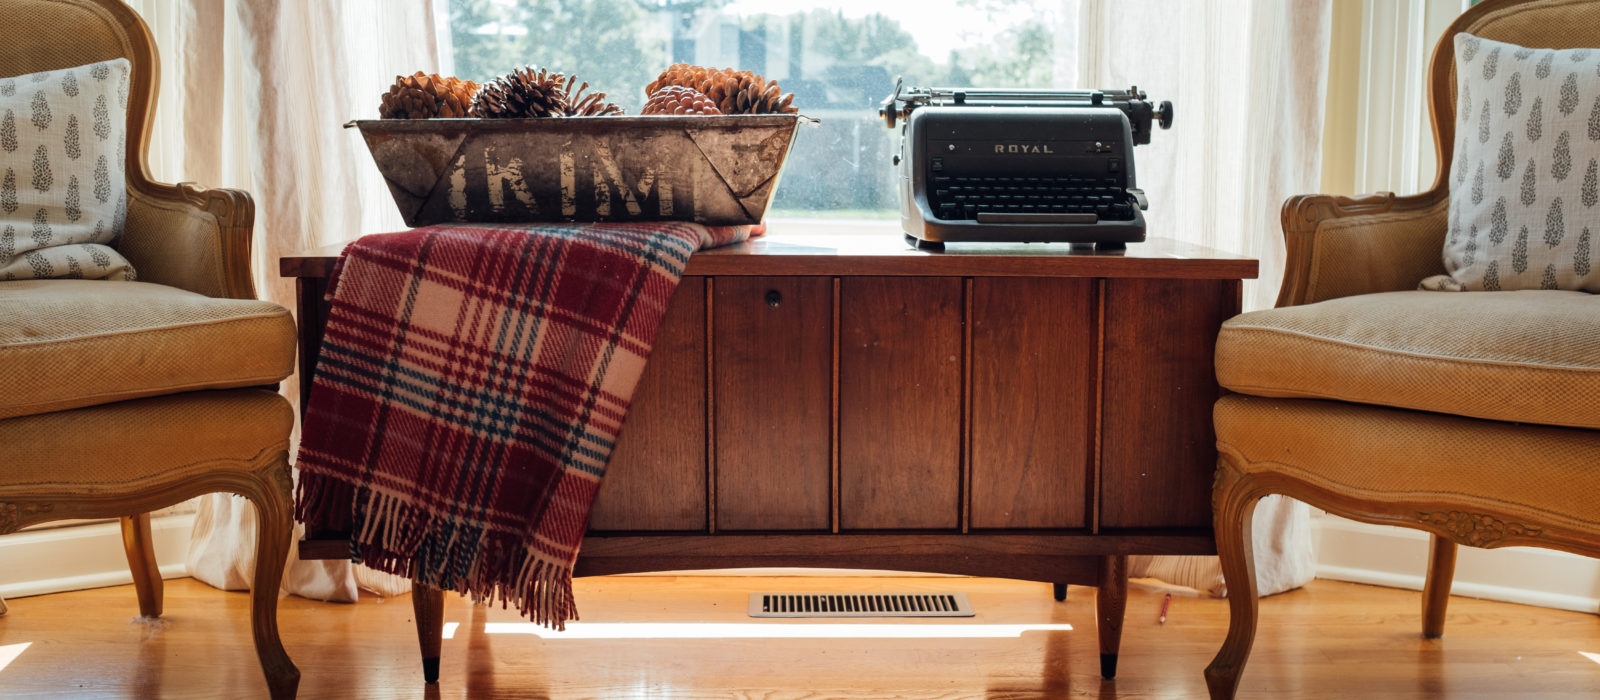 flea market style industrial plaid wool blanket eclectic